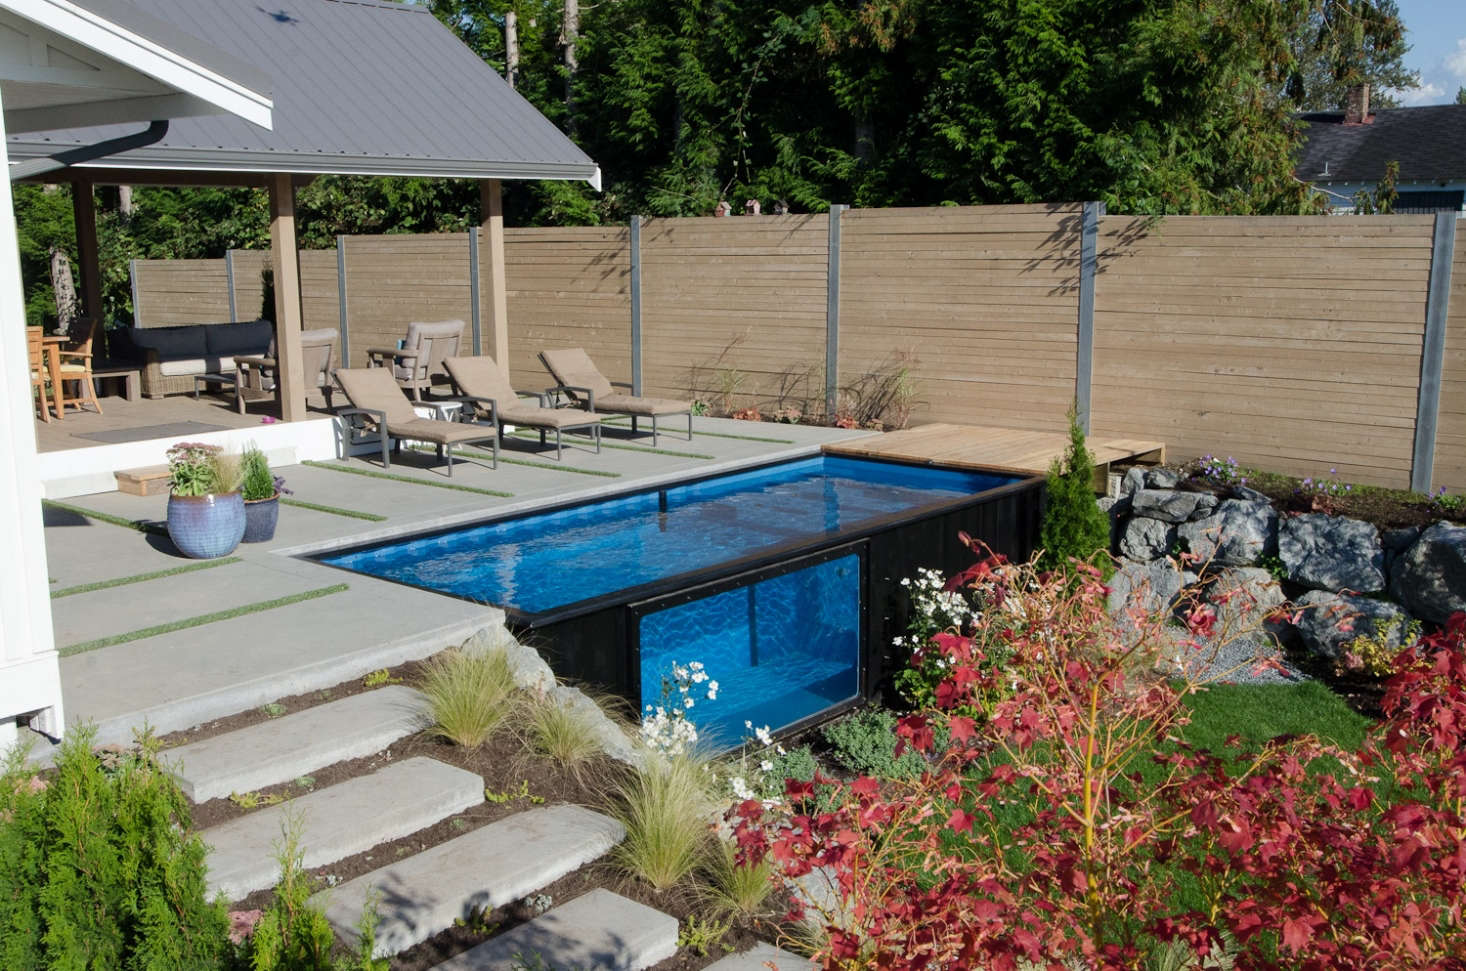 It takes from six to eightweeks to build each Modpool at the factory in Abbotsford. After delivery, if the ground prep is all done, the pool can be up and running in minutes.